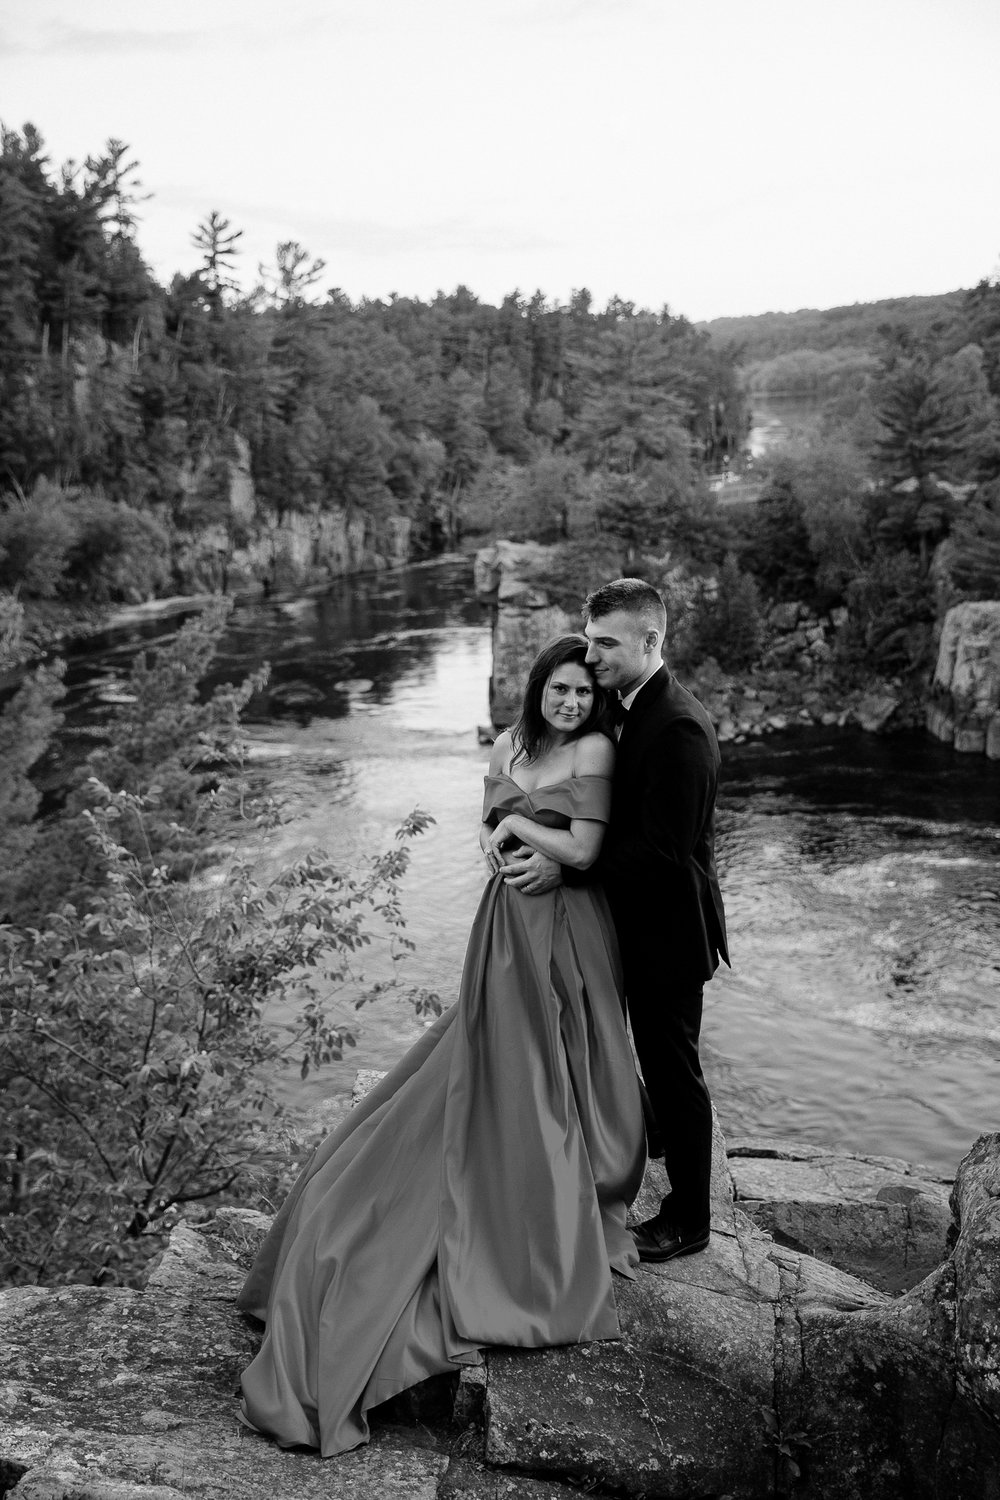 Jen_Montgomery_Photography_Allison&David_Couple_FB-83BW.JPG